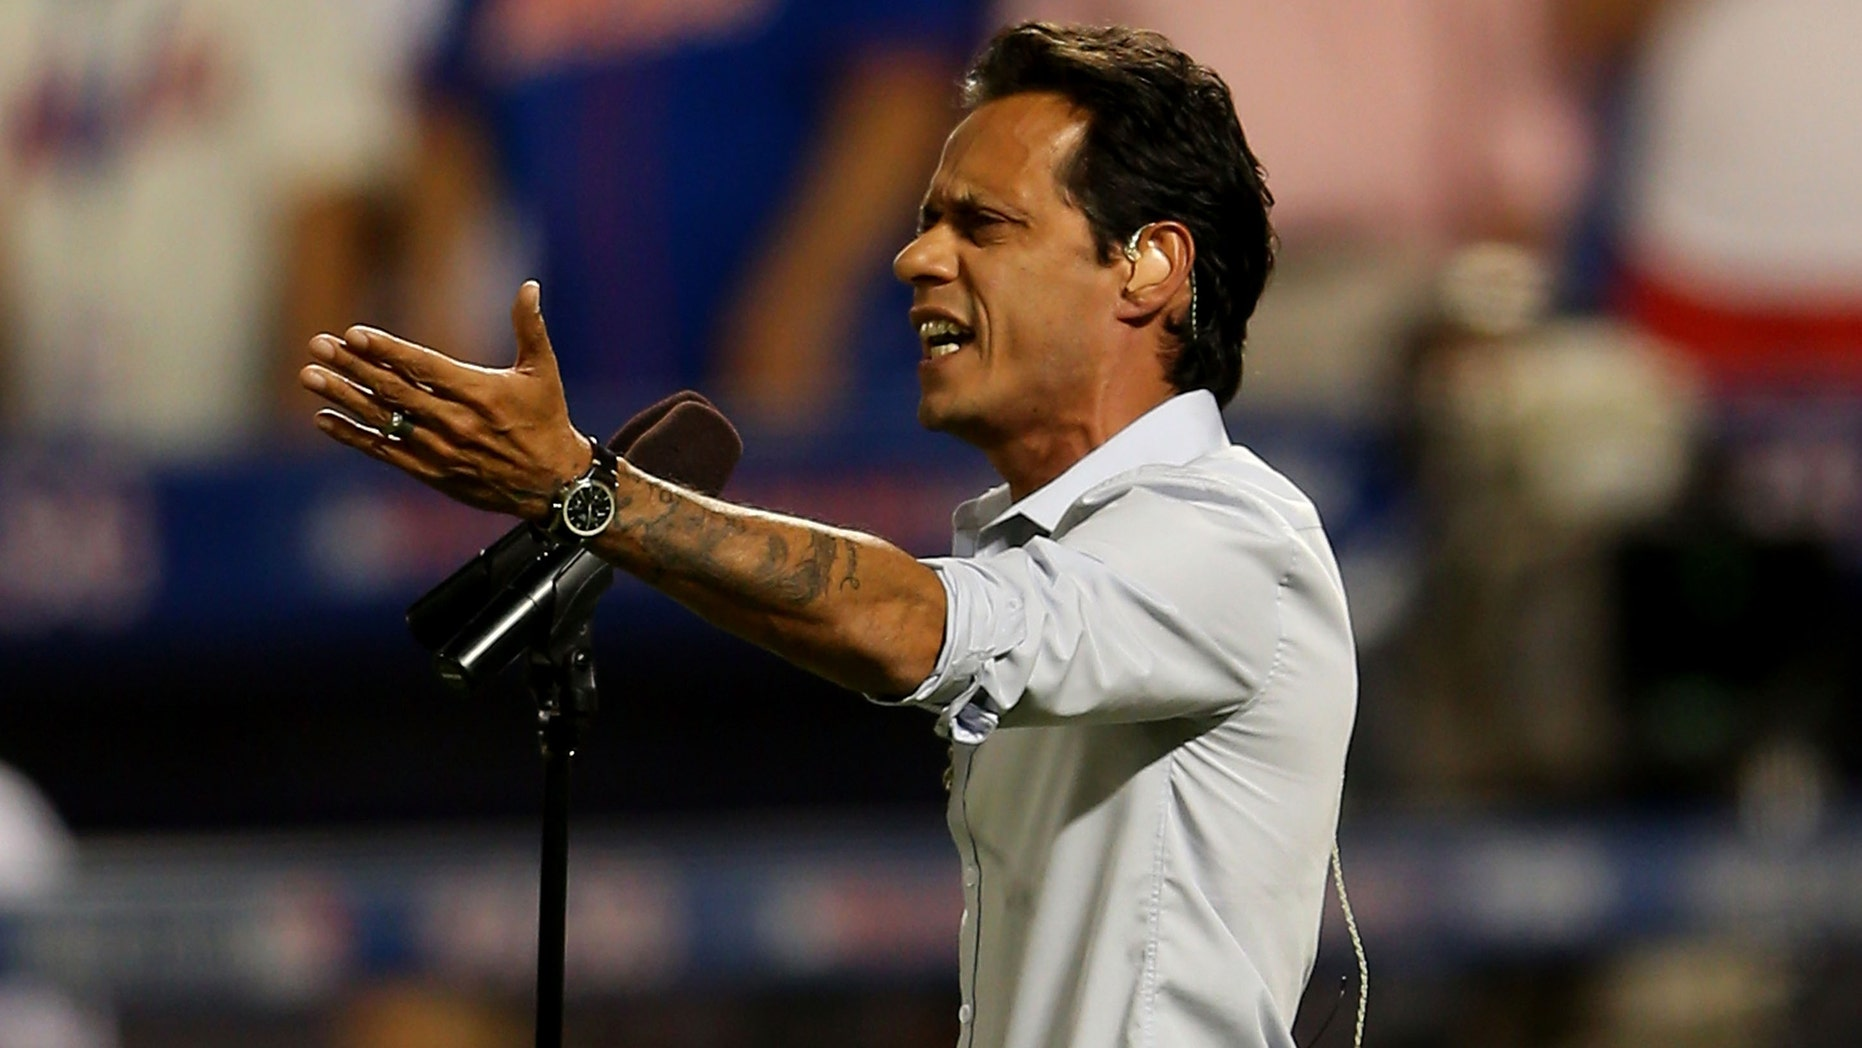 Marc Anthony performs during the 84th MLB All-Star Game on July 16, 2013 at Citi Field in New York City.